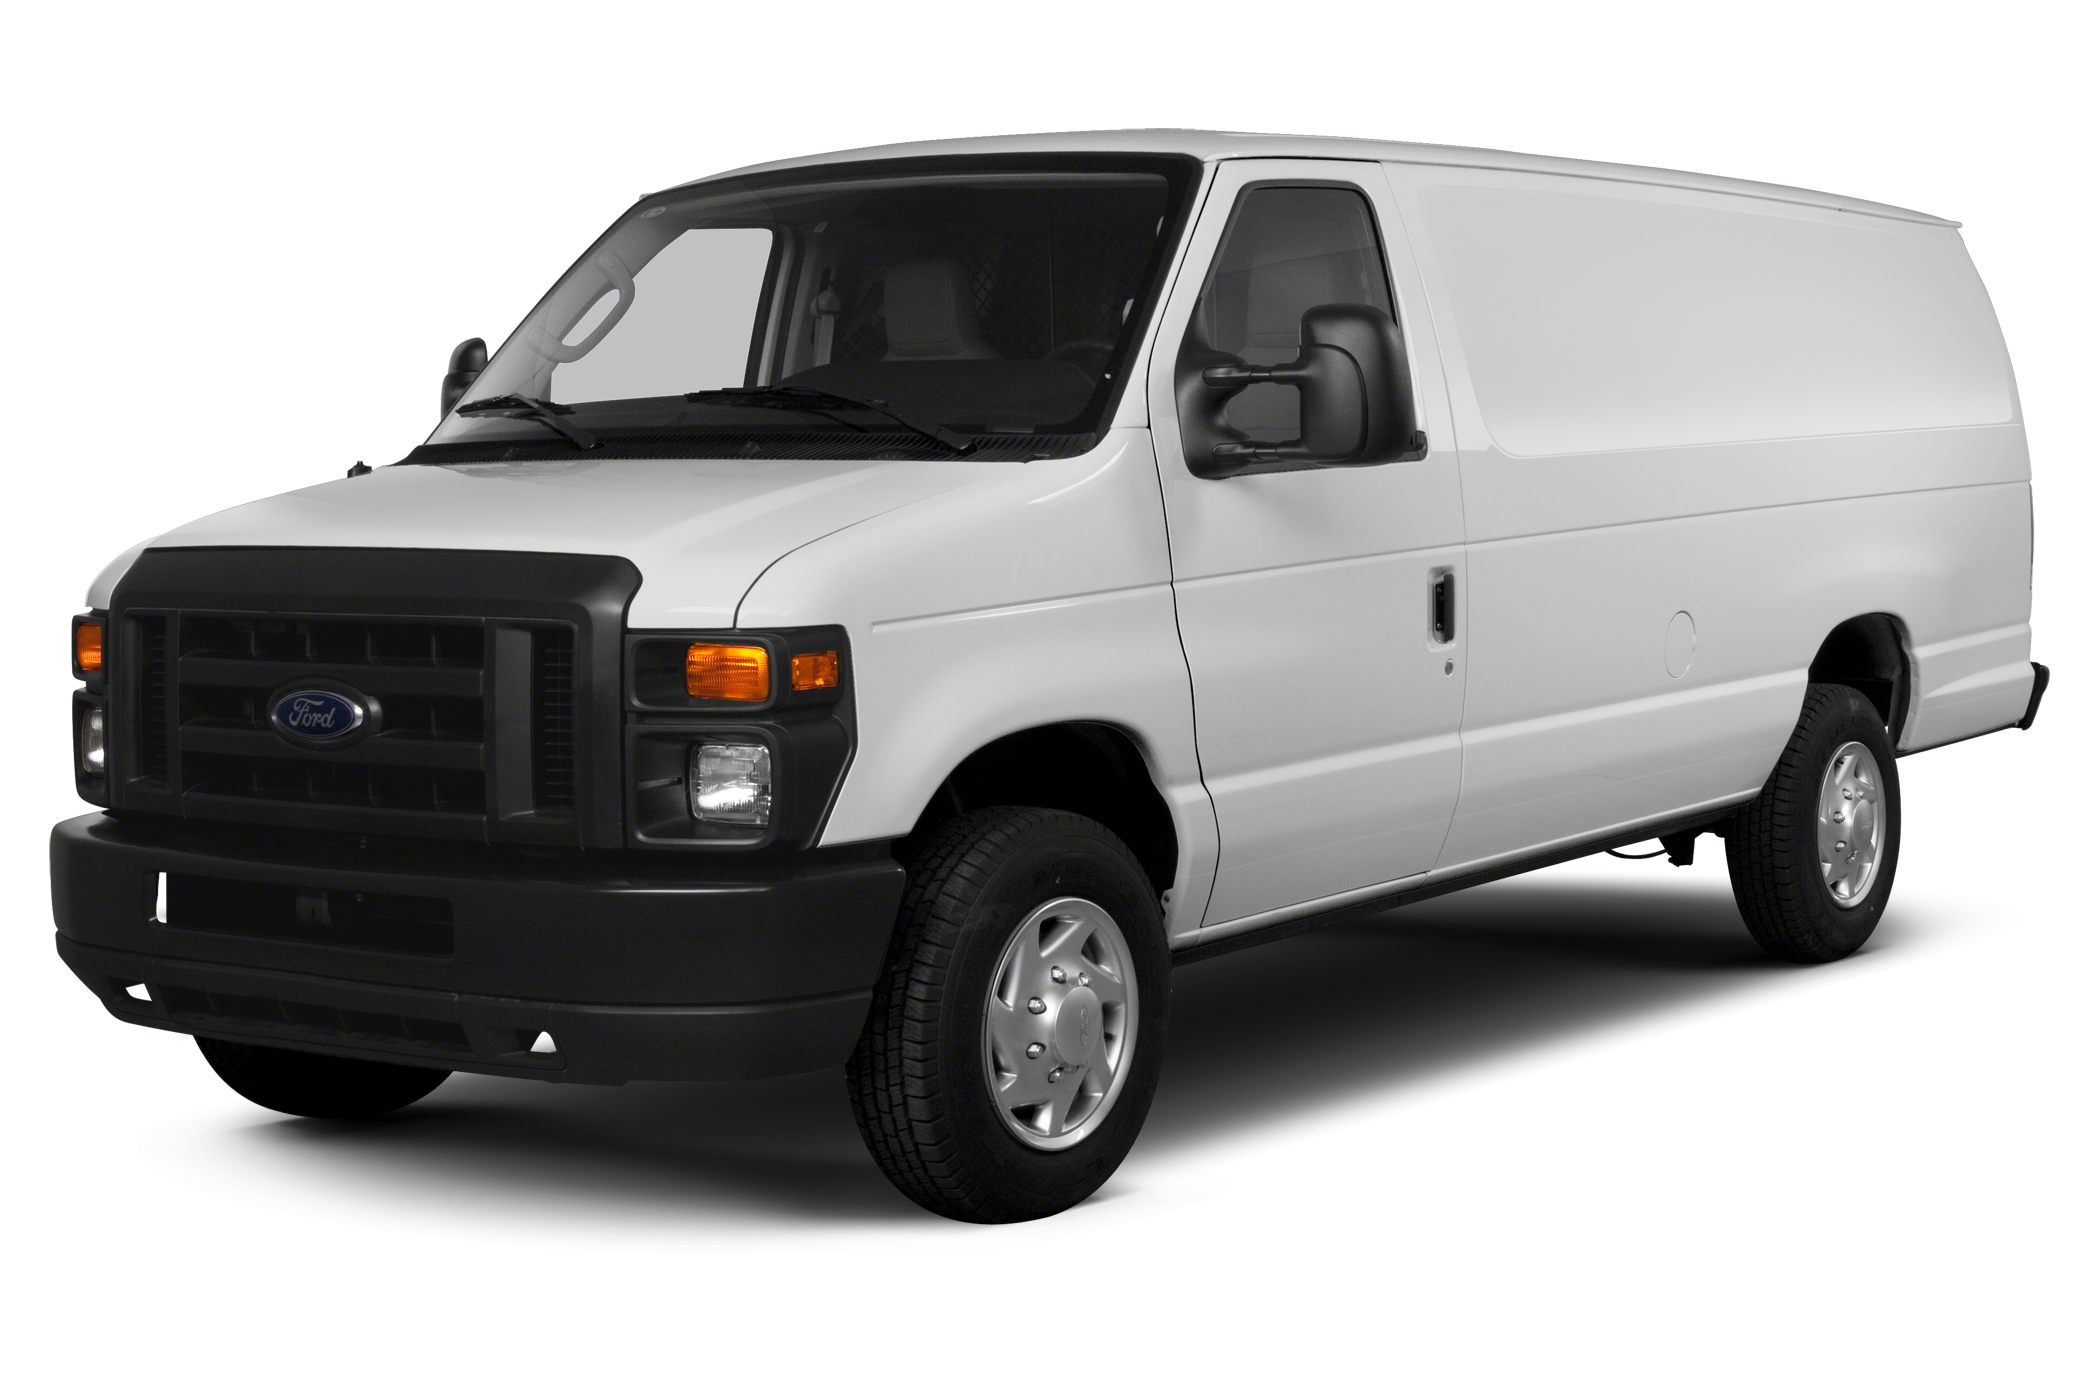 2013 Ford E250 Cargo Cargo Van for sale in Bluffton for $22,595 with 16,080 miles.